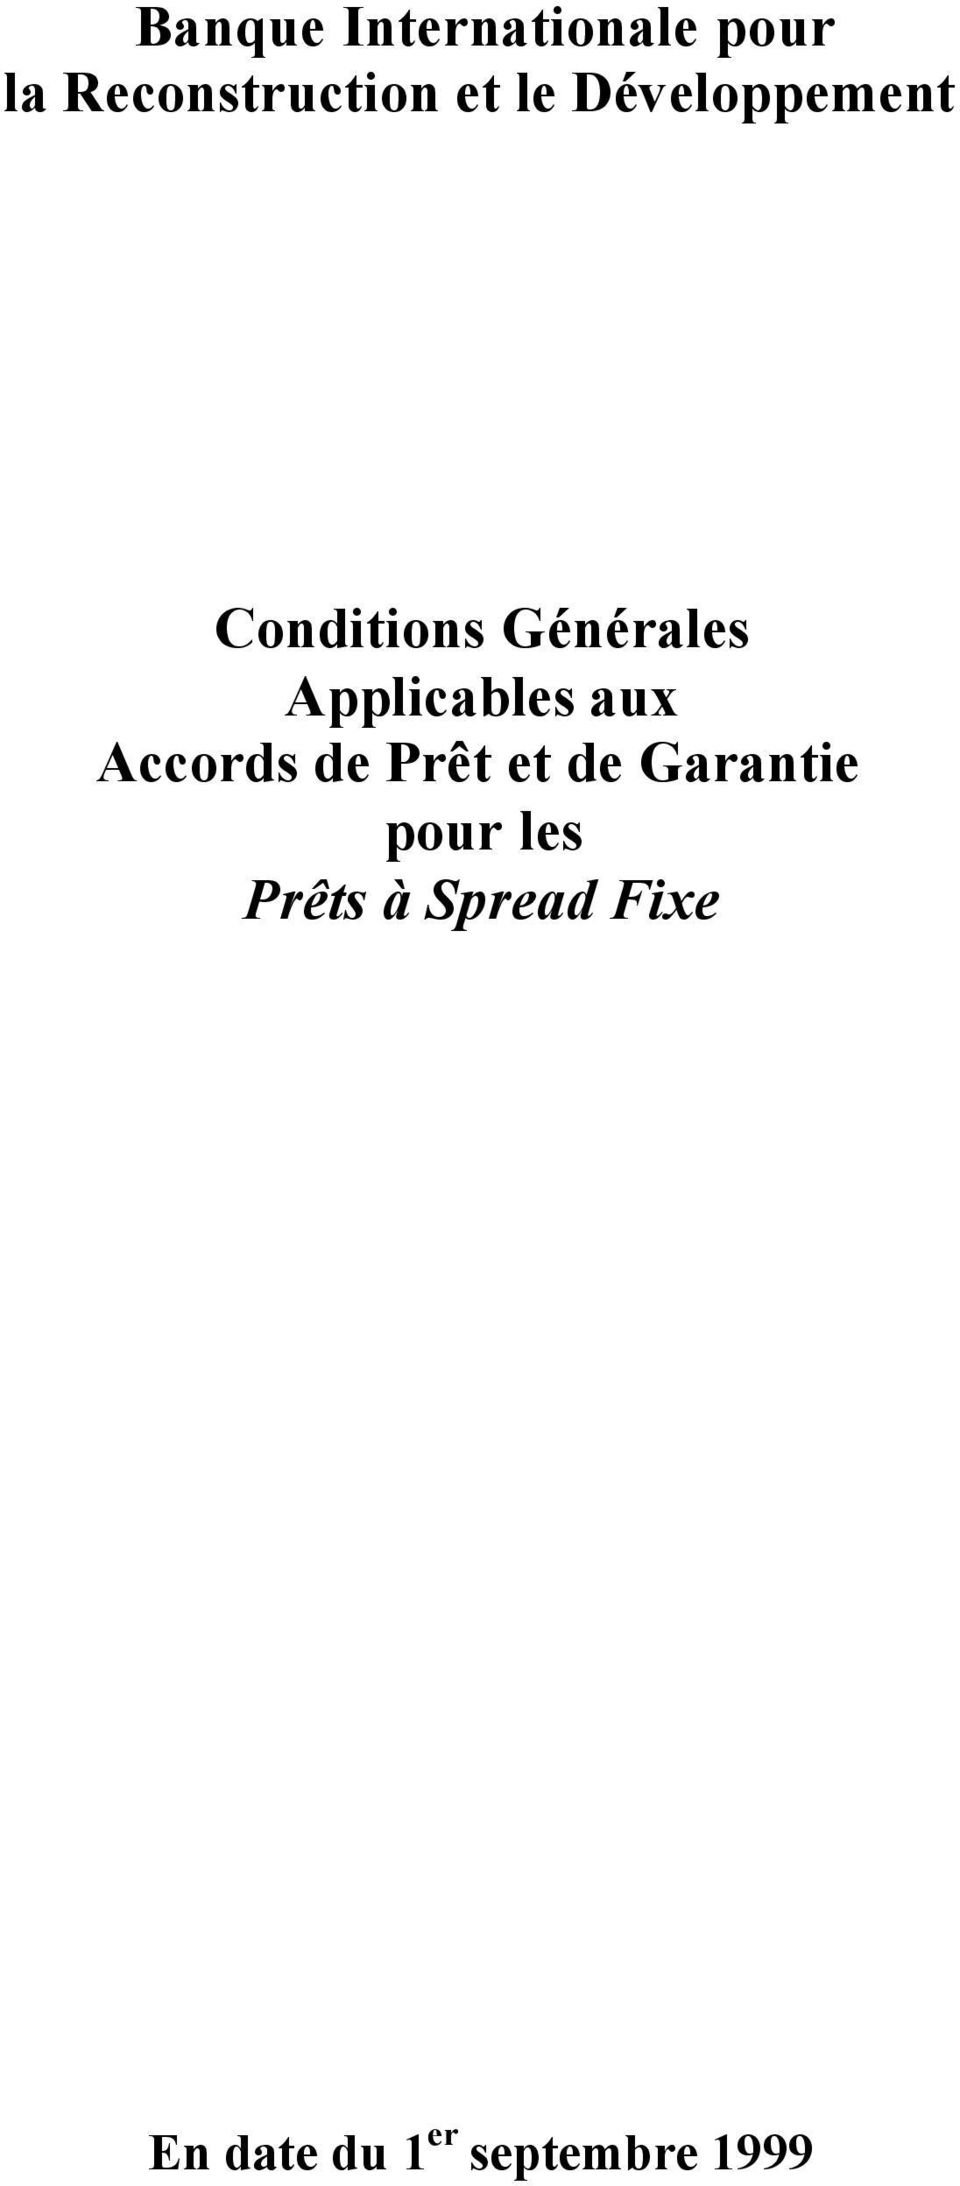 Applicables aux Accords de Prêt et de Garantie